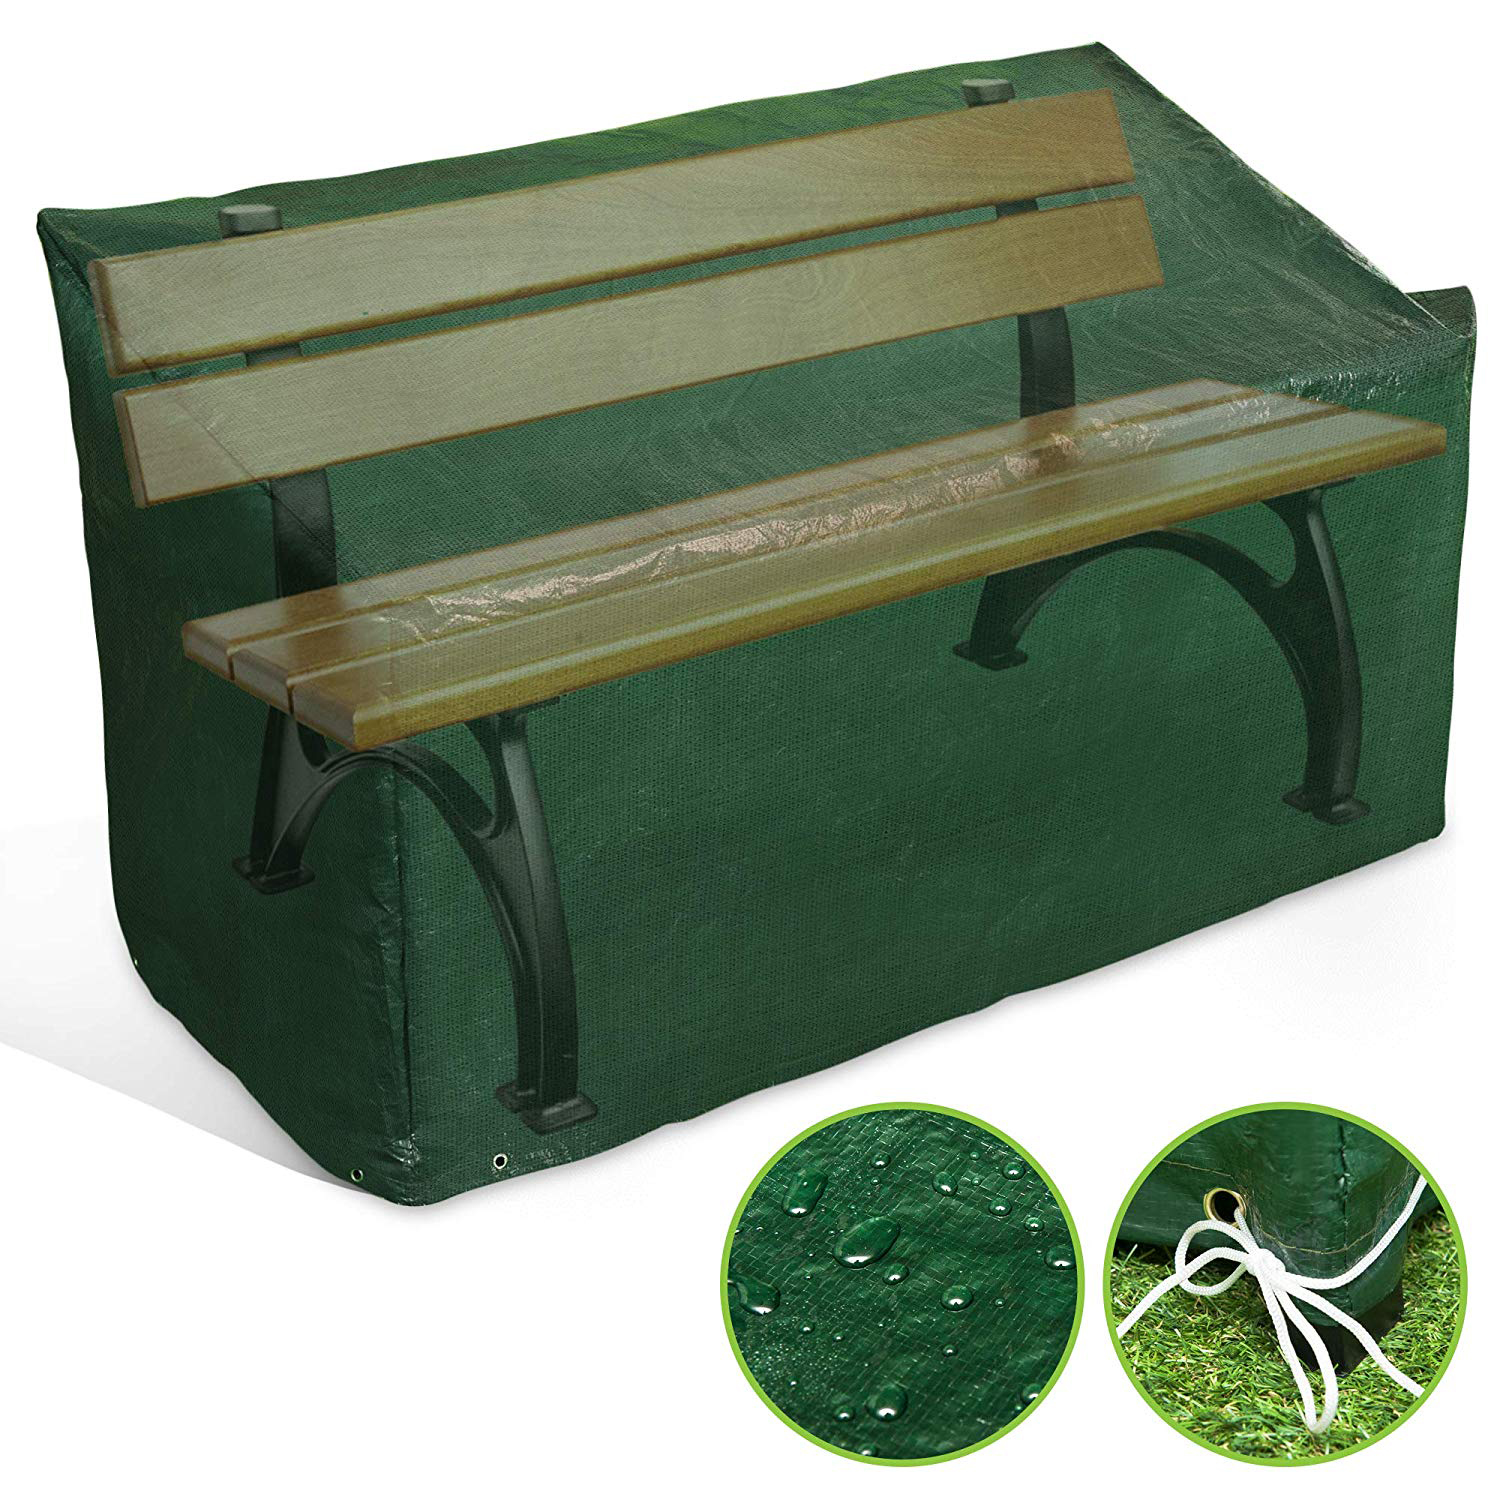 Waterproof and anti-fading outdoor garden furniture 4 seat table cover